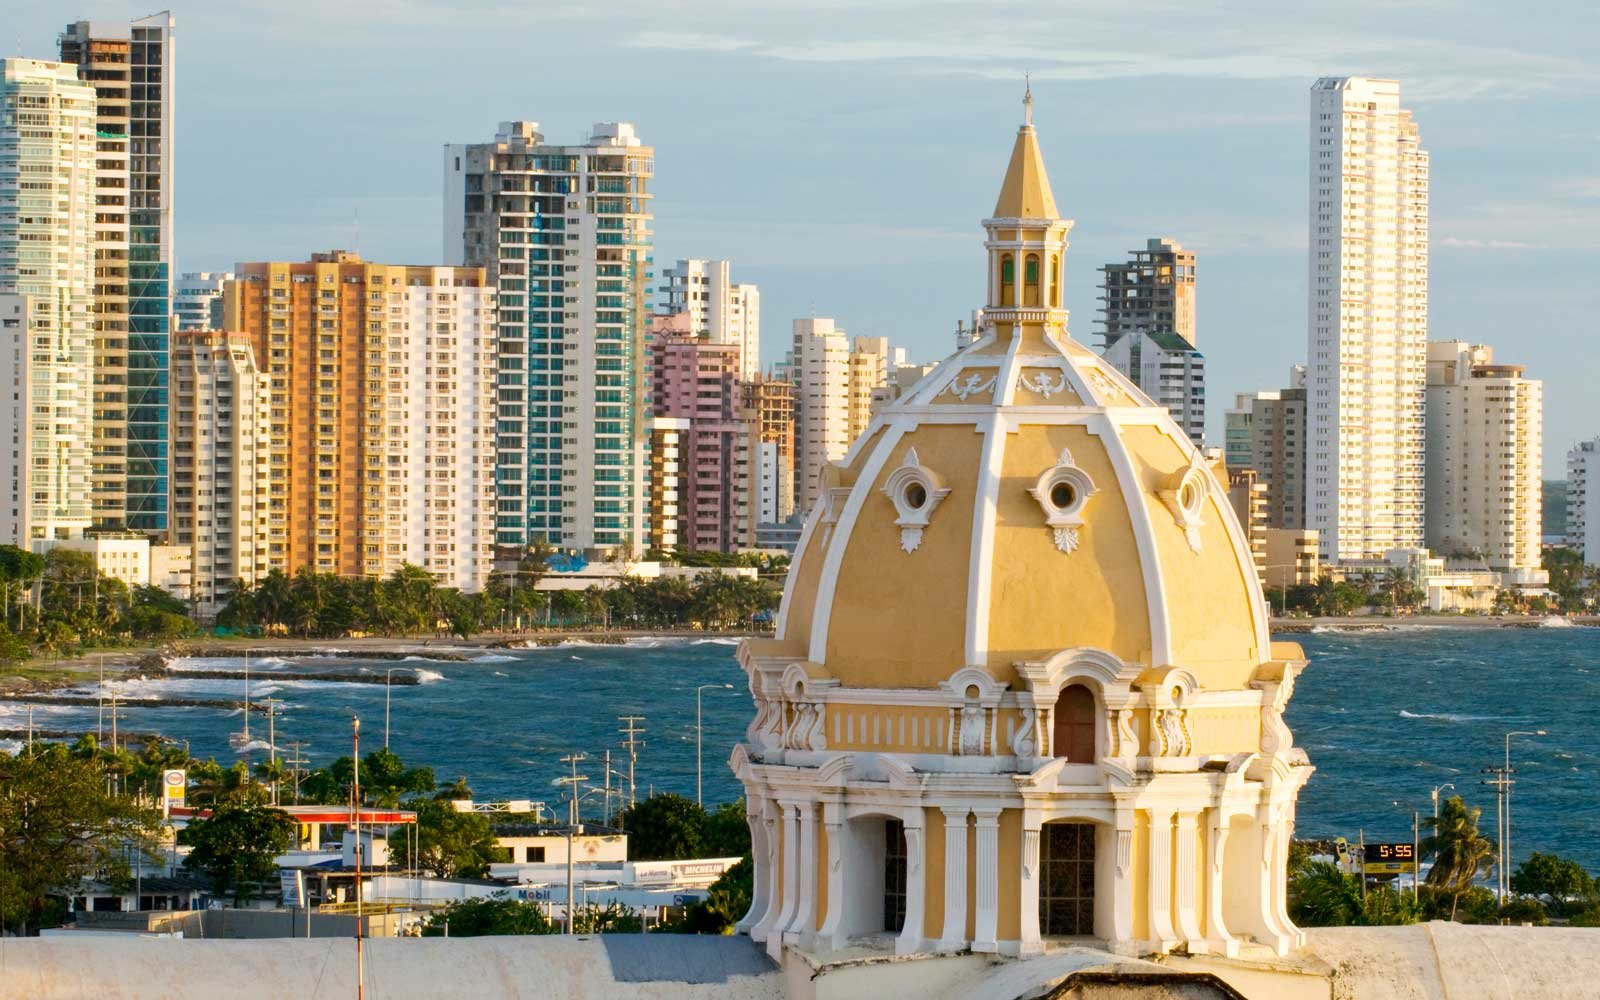 Cartagena's Old City Is Magical, but Don't Miss What's New | Travel + Leisure